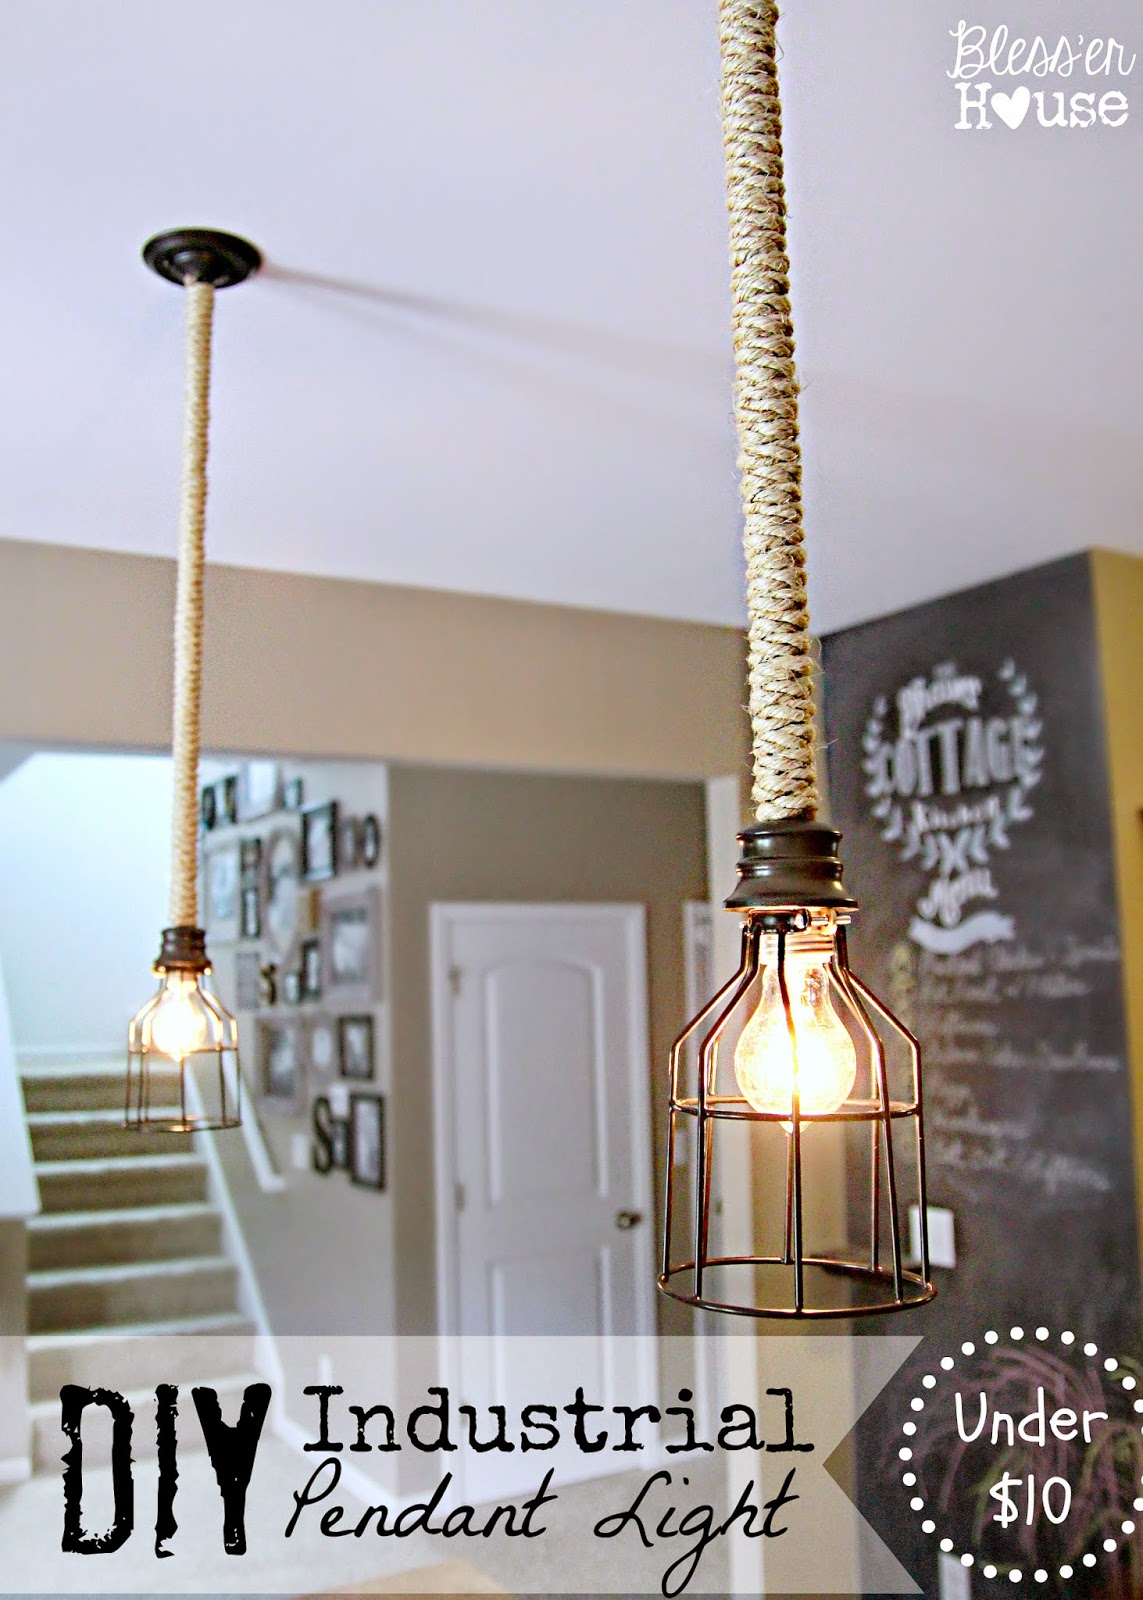 Diy industrial pendant light for under 10 blesser house diy industrial pendant light blesser house arubaitofo Images